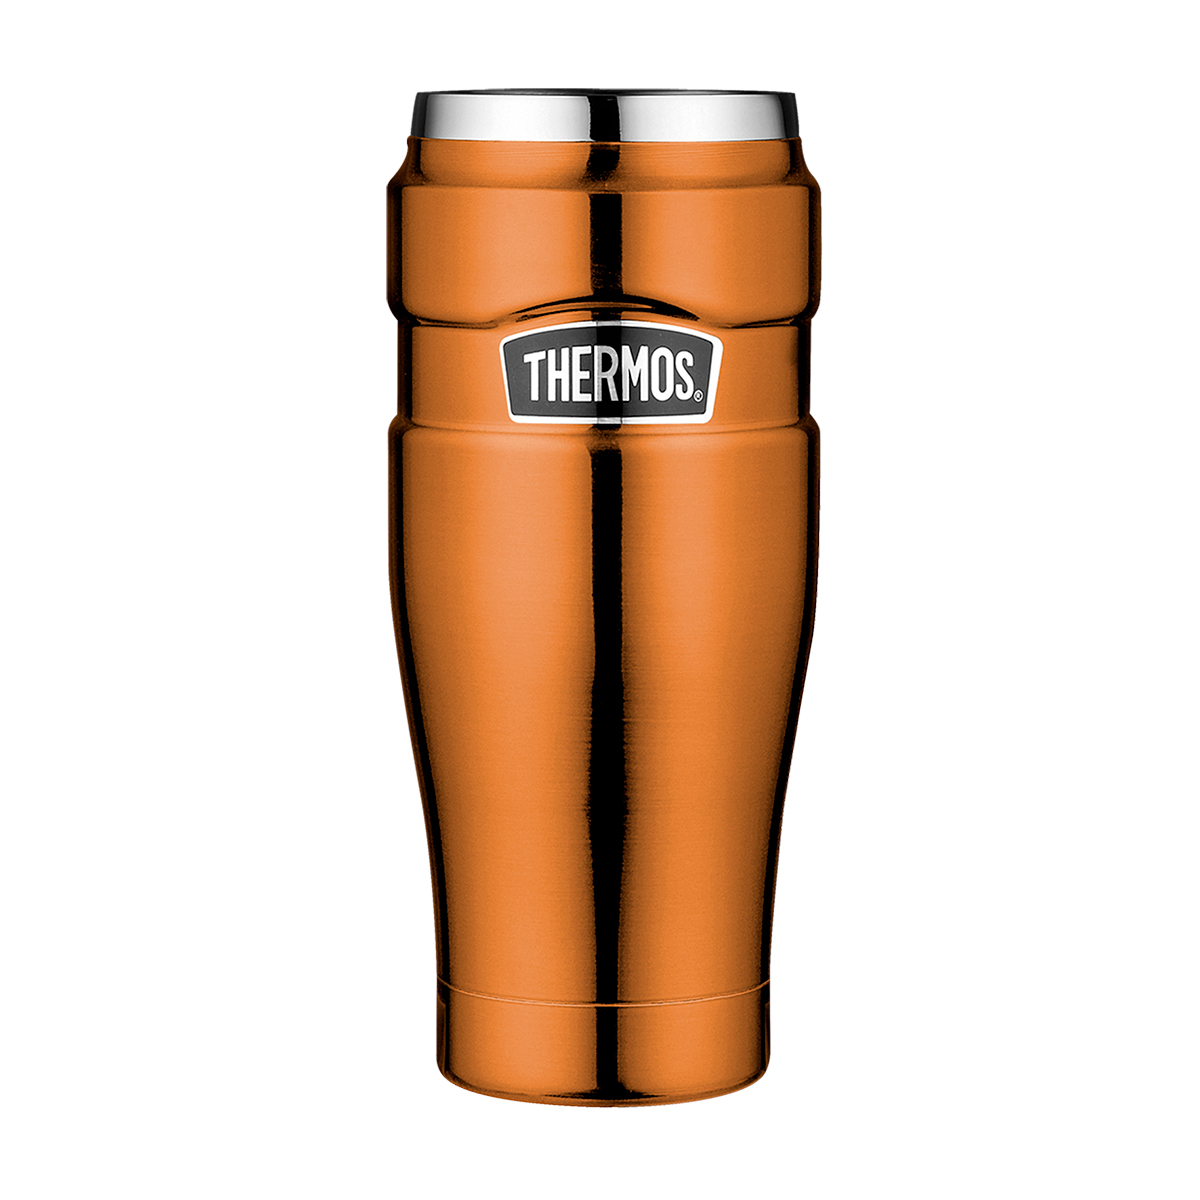 Онлайн каталог PROMENU: Термокружка Thermos Isolierbecher Stainless King copper, объем 0,47 л, цвет  медный Thermos 4002.215.047